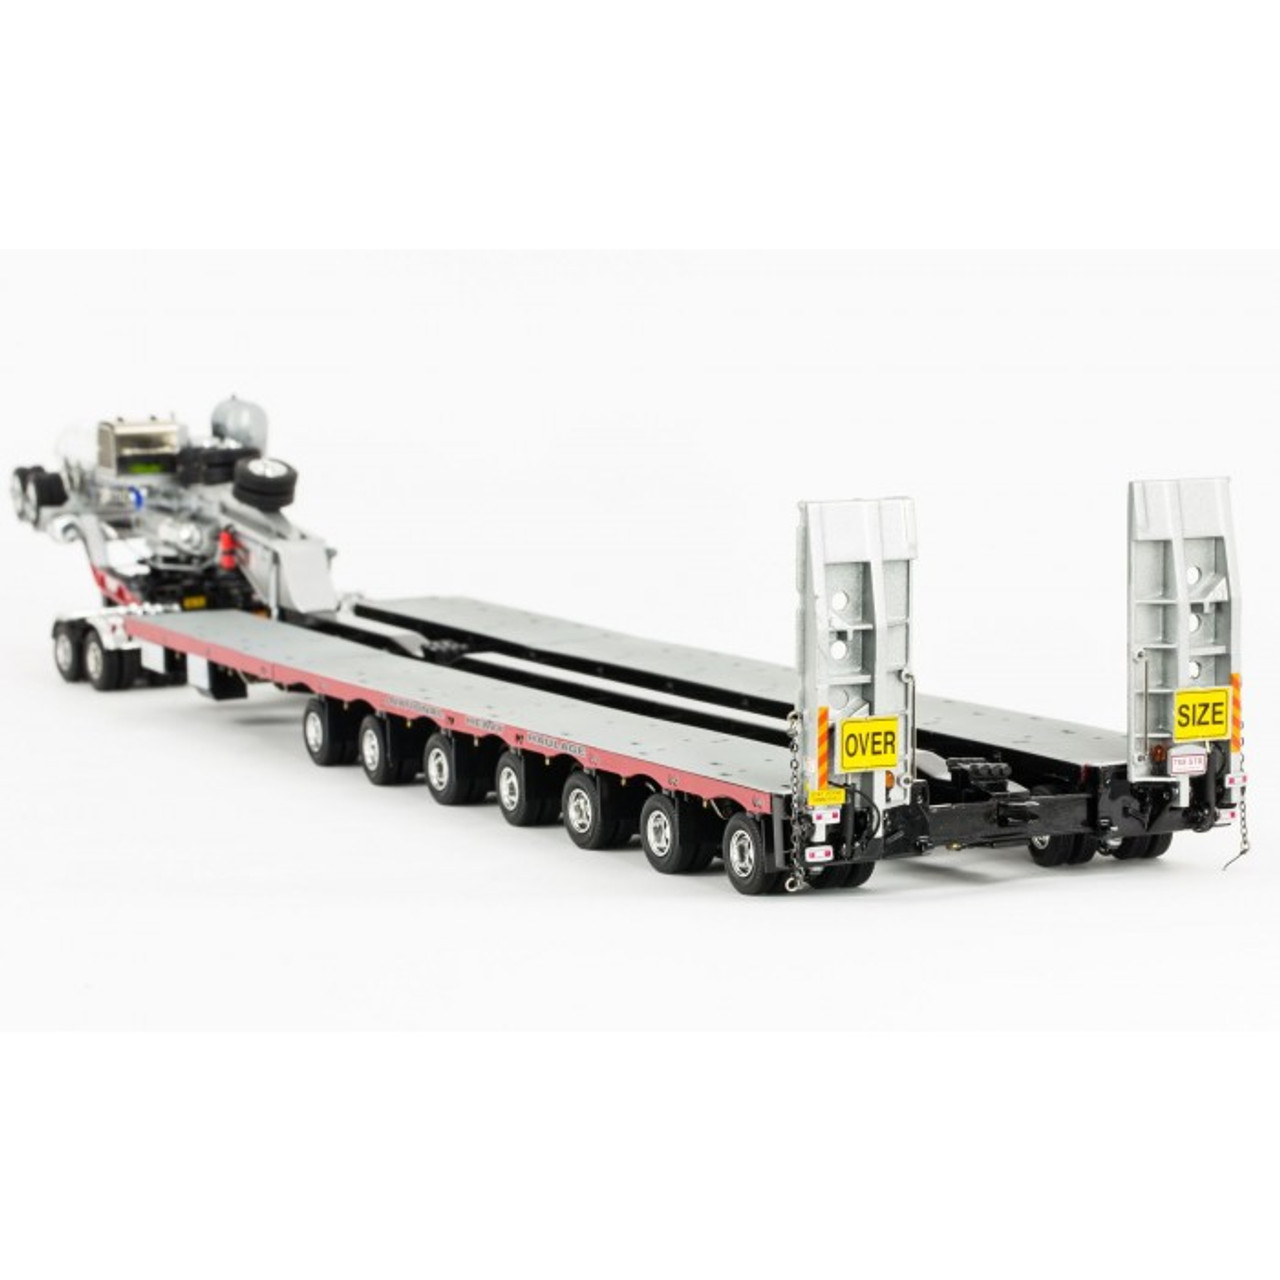 Drake 2x8 Dolly and 7x8 Steerable Low Loader Trailer in NHH Livery